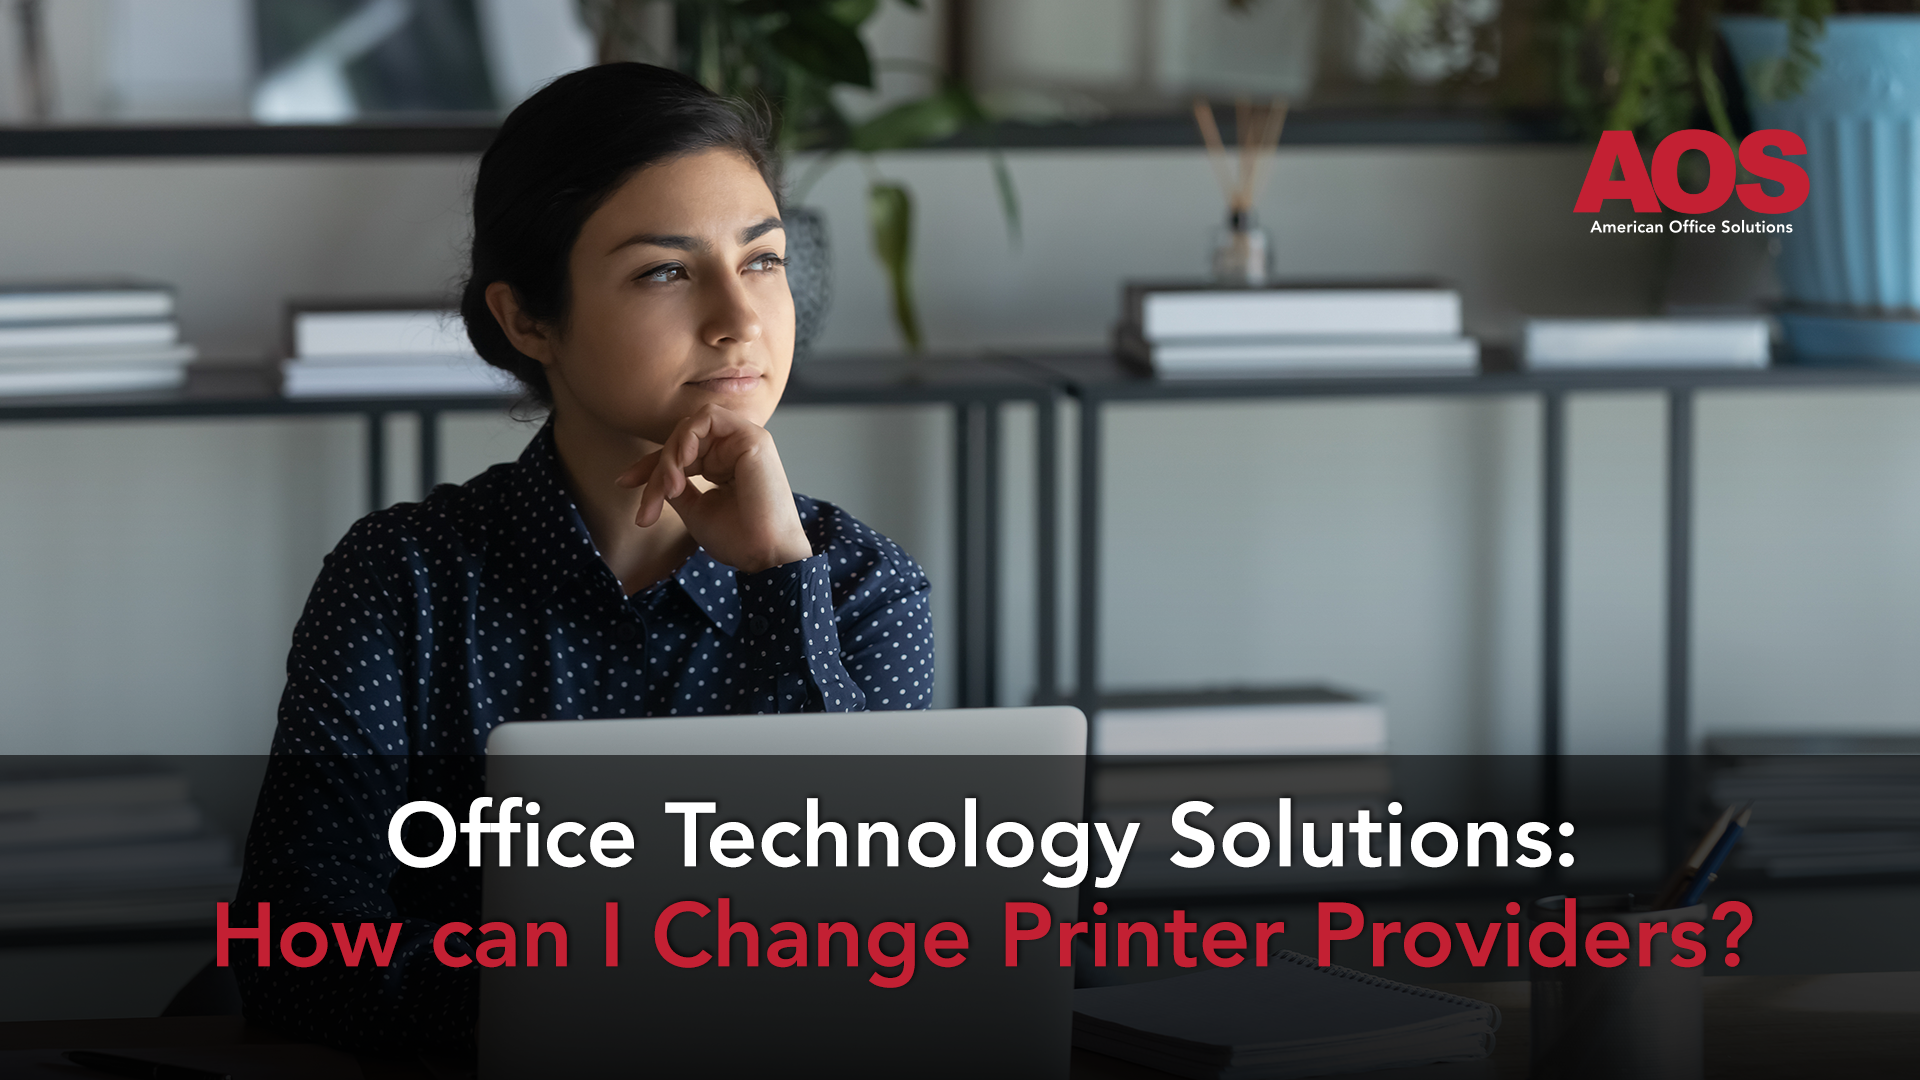 Office Technology Solutions: How Can I Change Printer Providers?